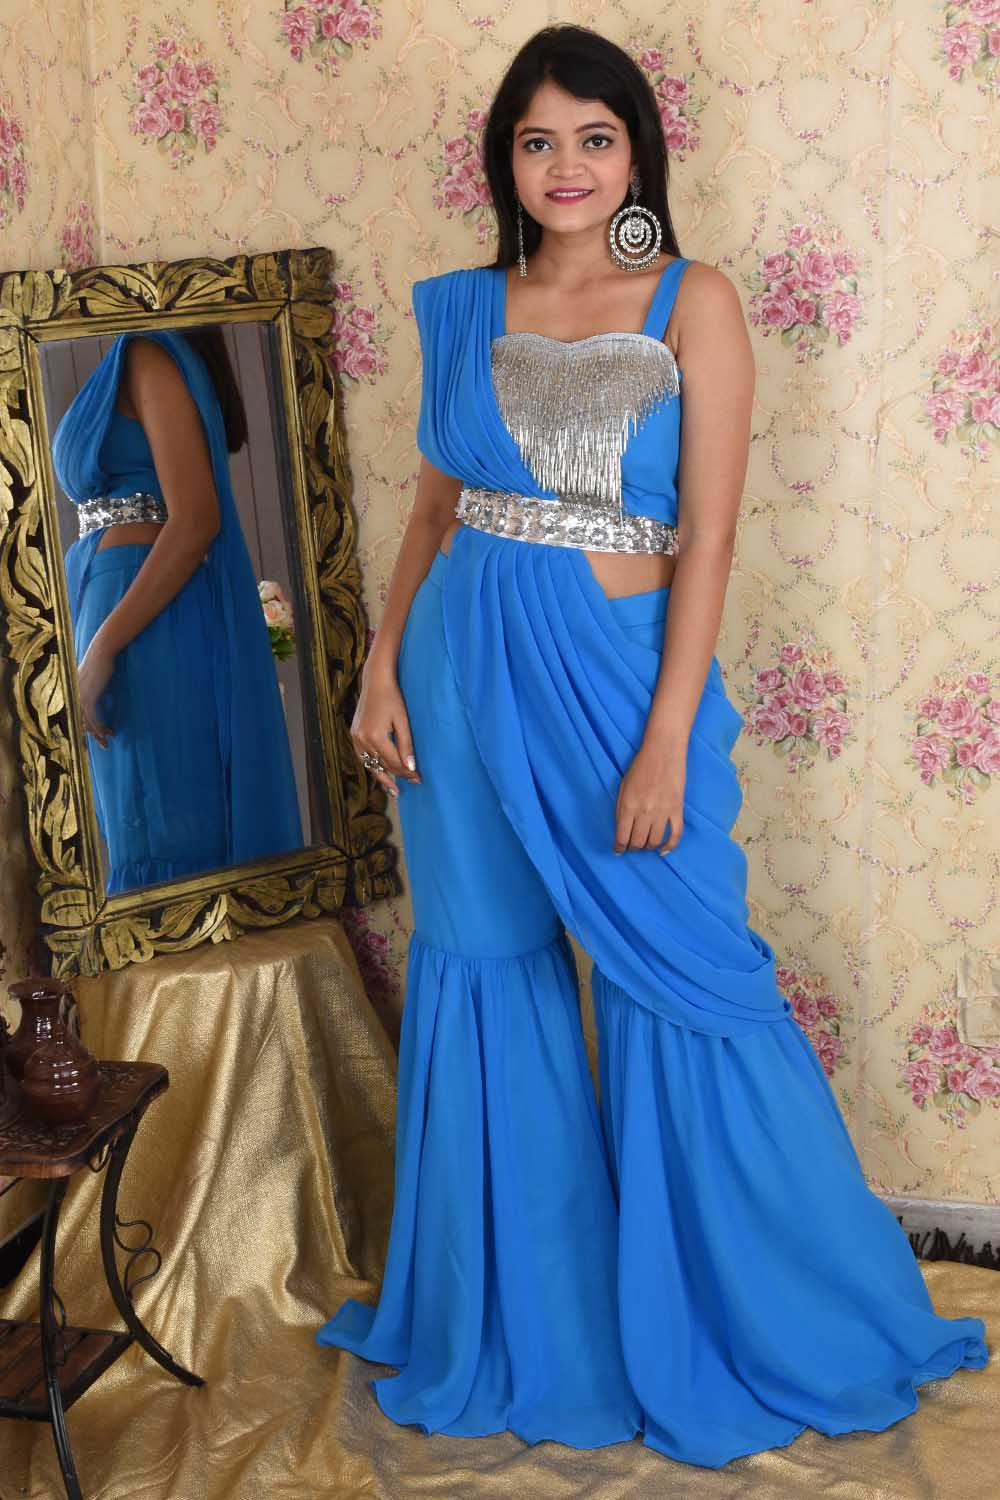 Blue Draped Saree with Silver Detailing